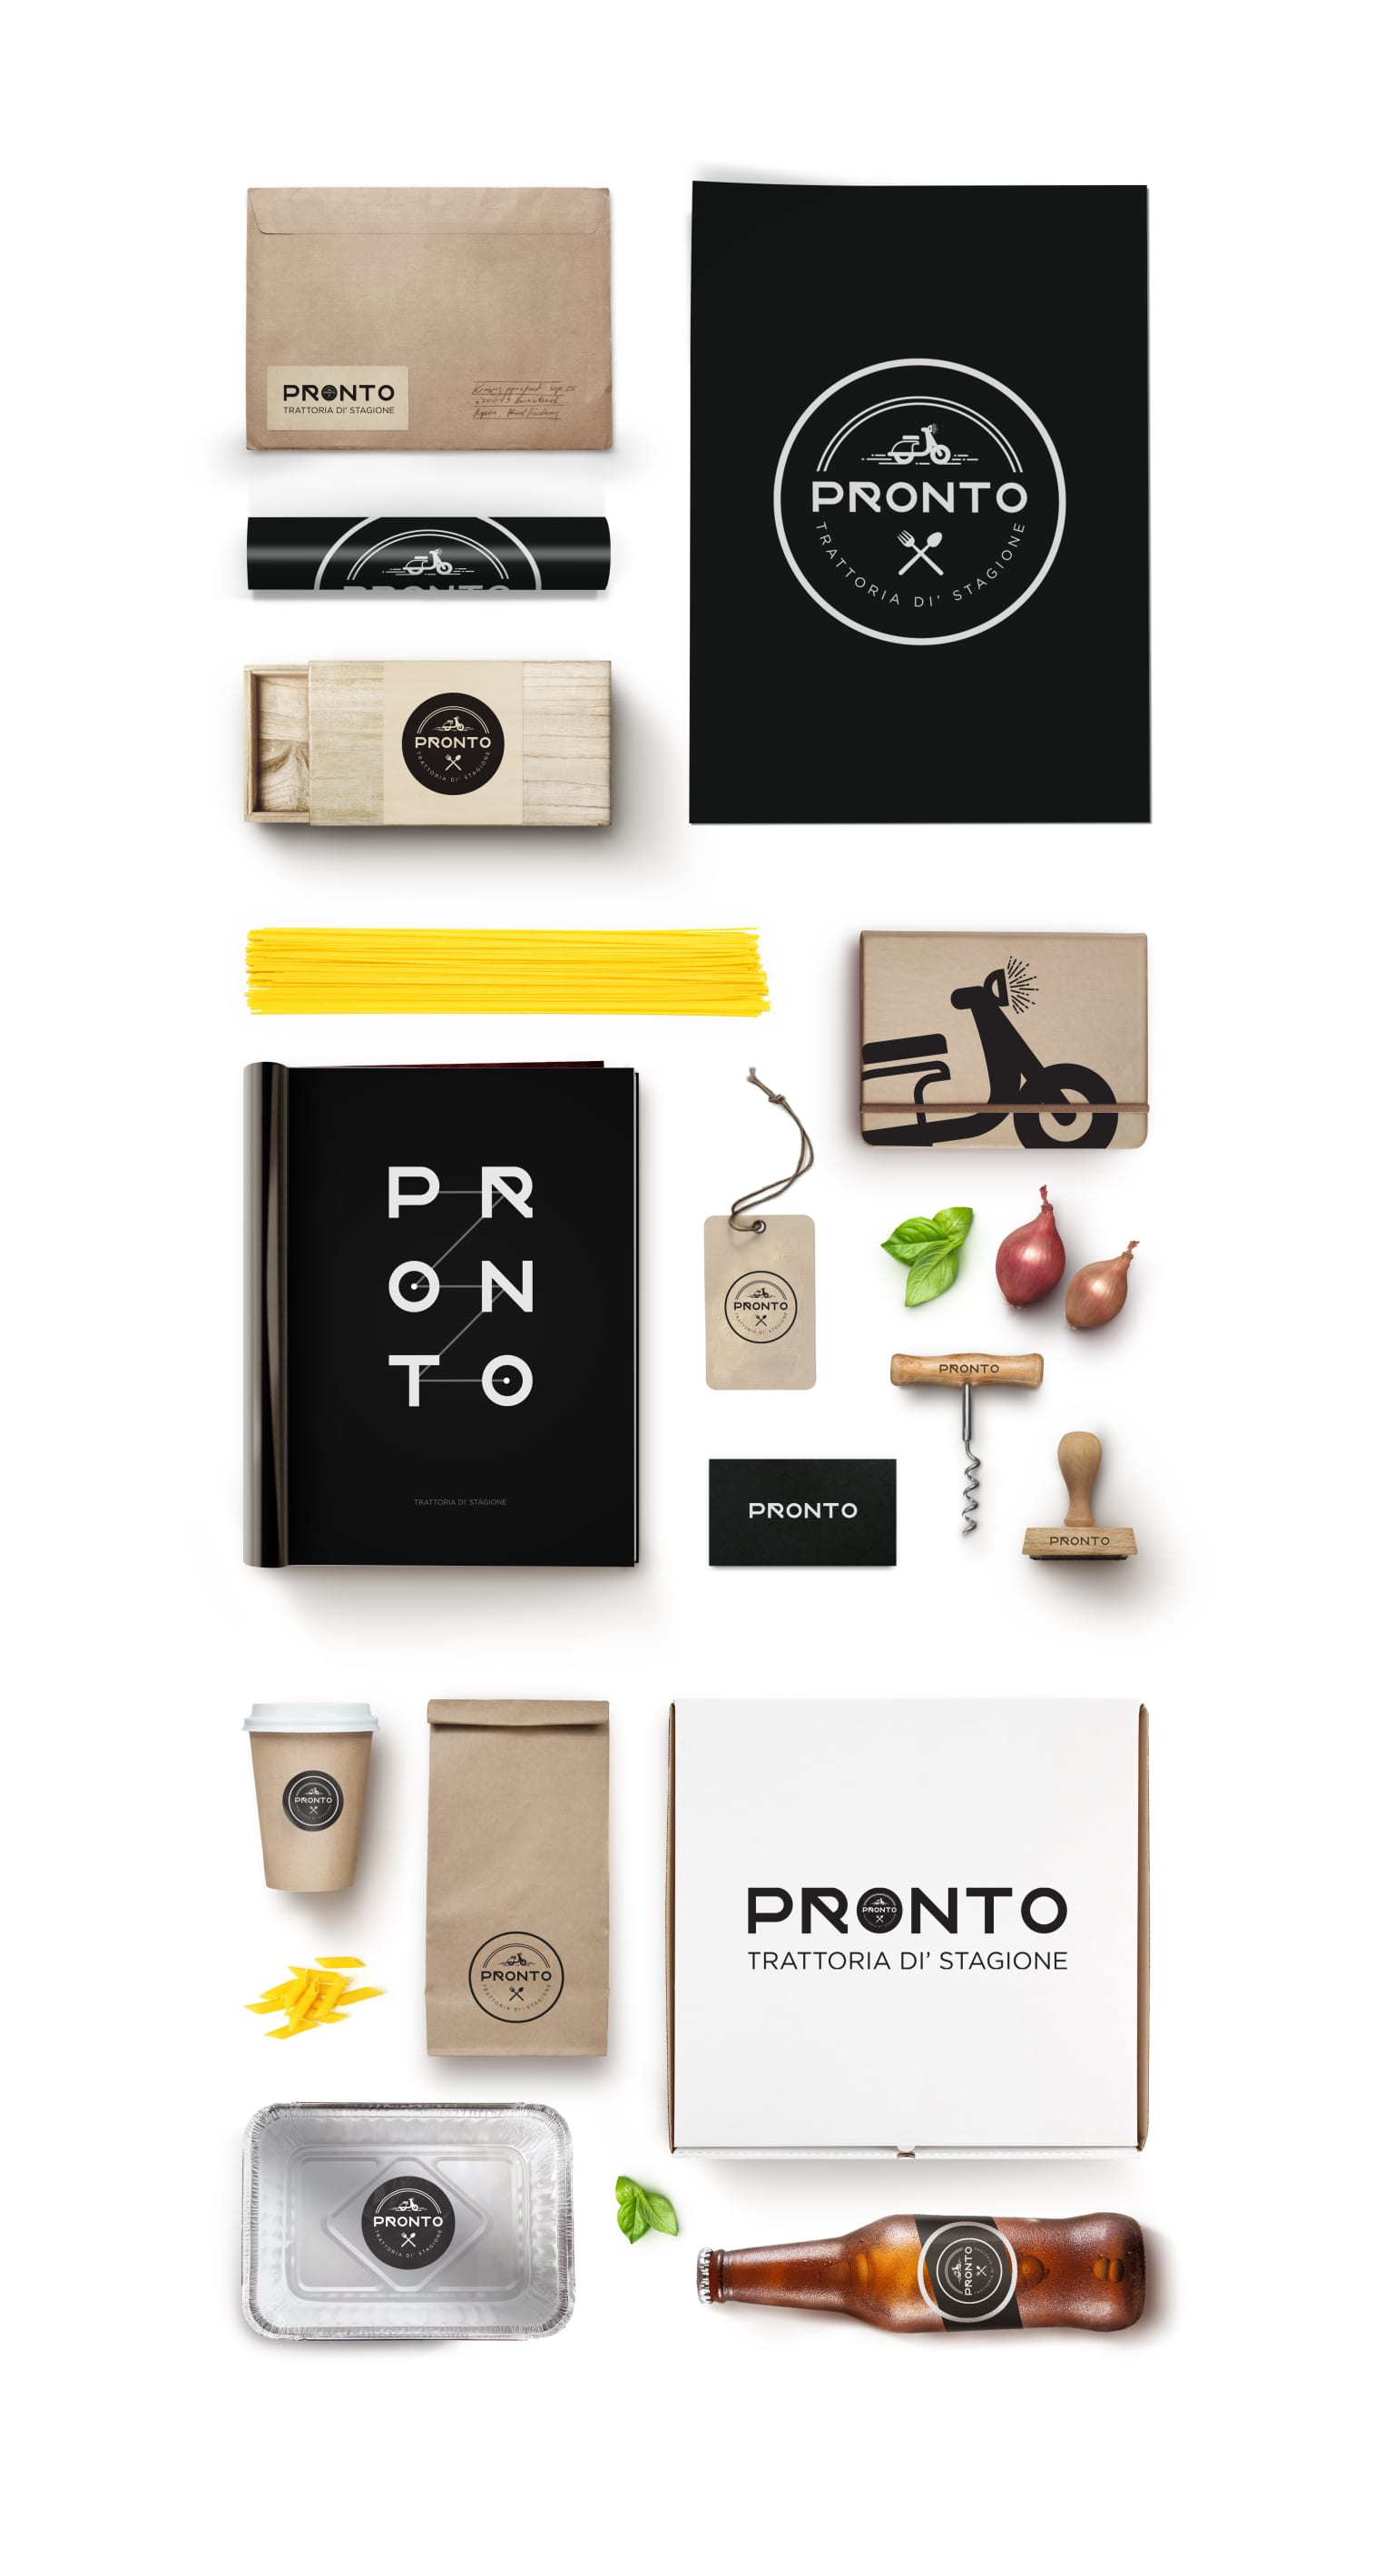 Pronto Visual Identity